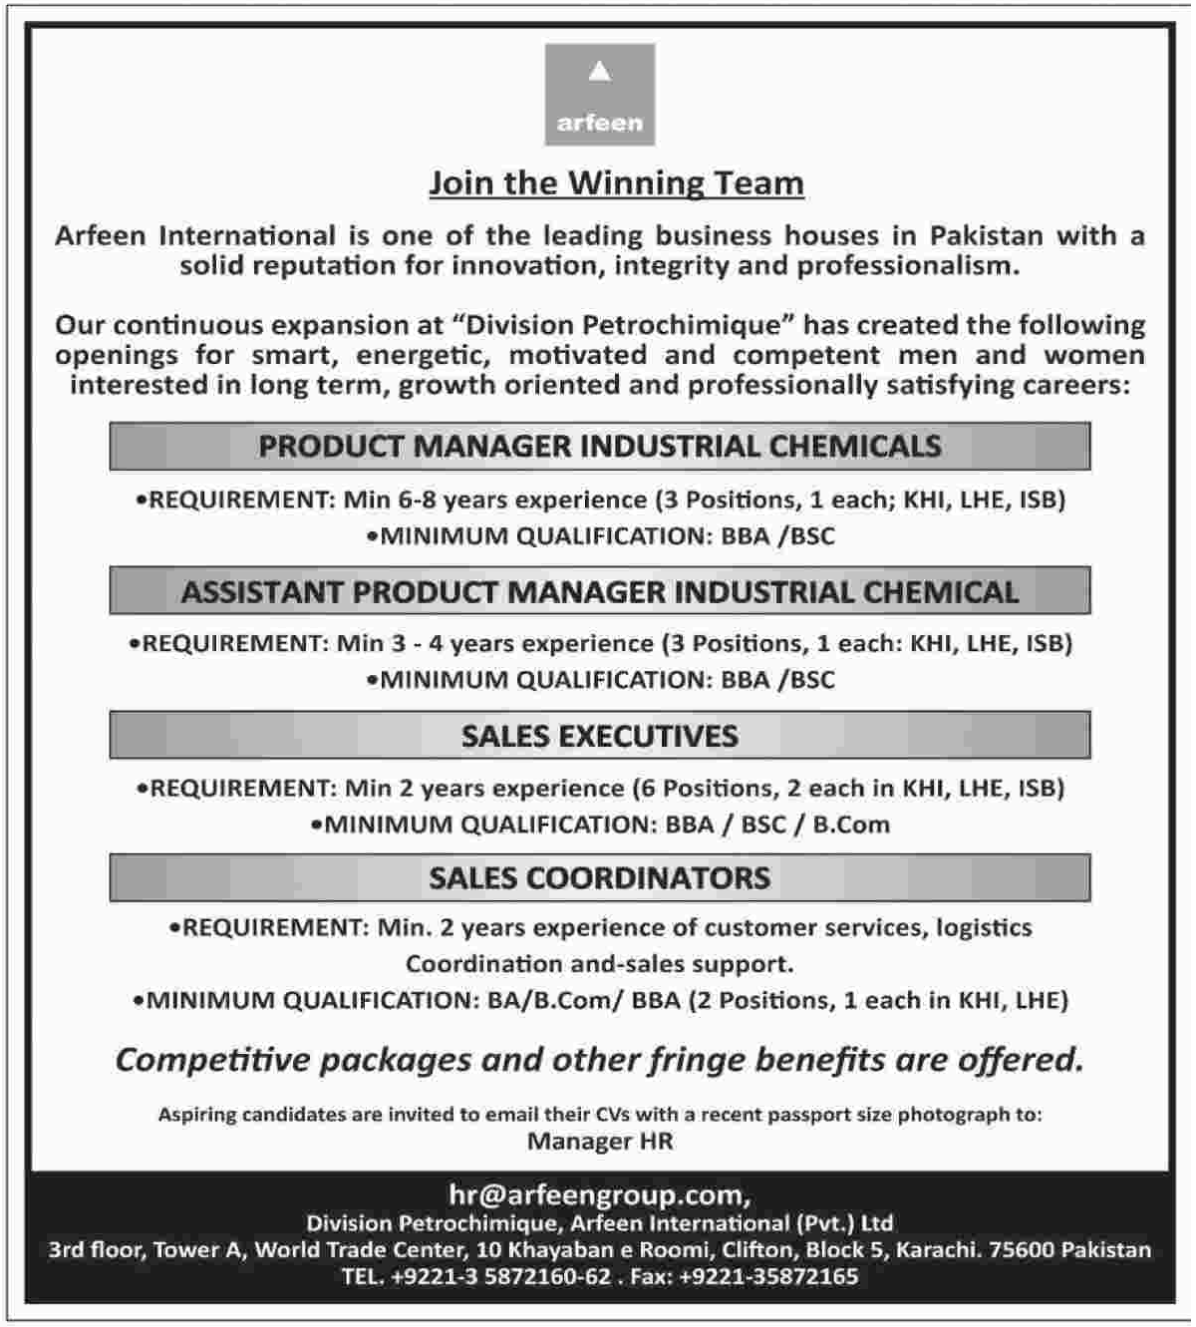 arfeen international jobs for product manager 2019 job advertisement pakistan